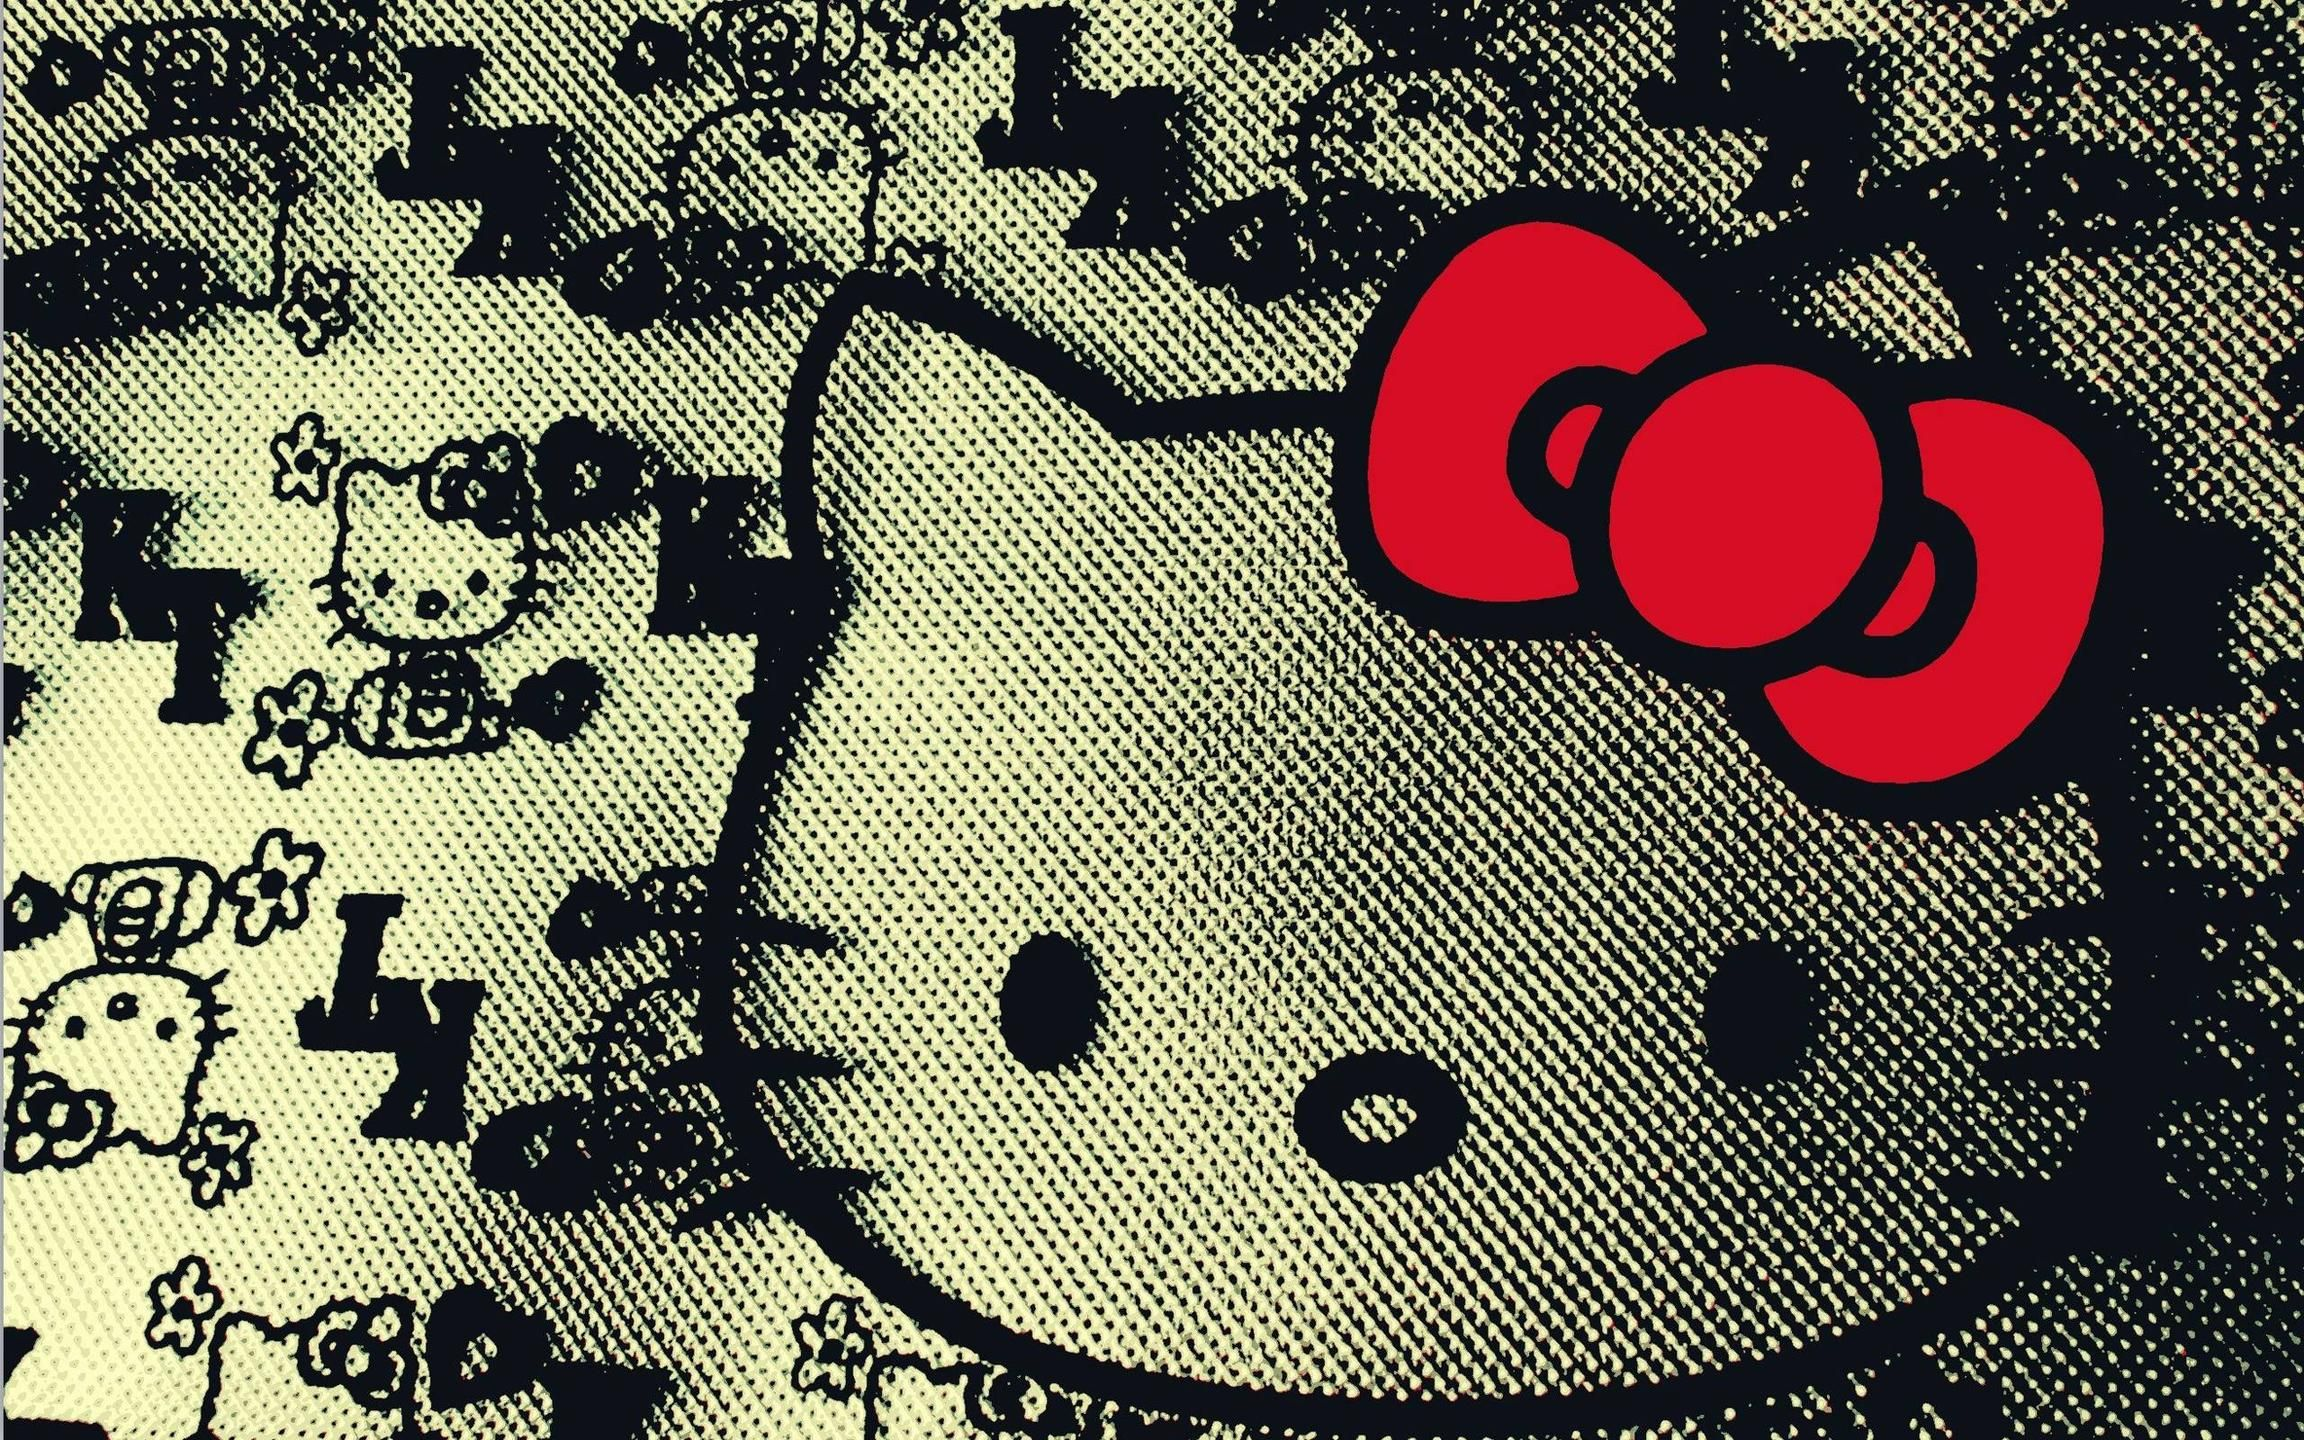 Hello Kitty Hd Wallpapers Free Download Latest Hello Kitty Hd Wallpapers For Computer Mo Hello Kitty Wallpaper Hd Hello Kitty Wallpaper Hello Kitty Pictures